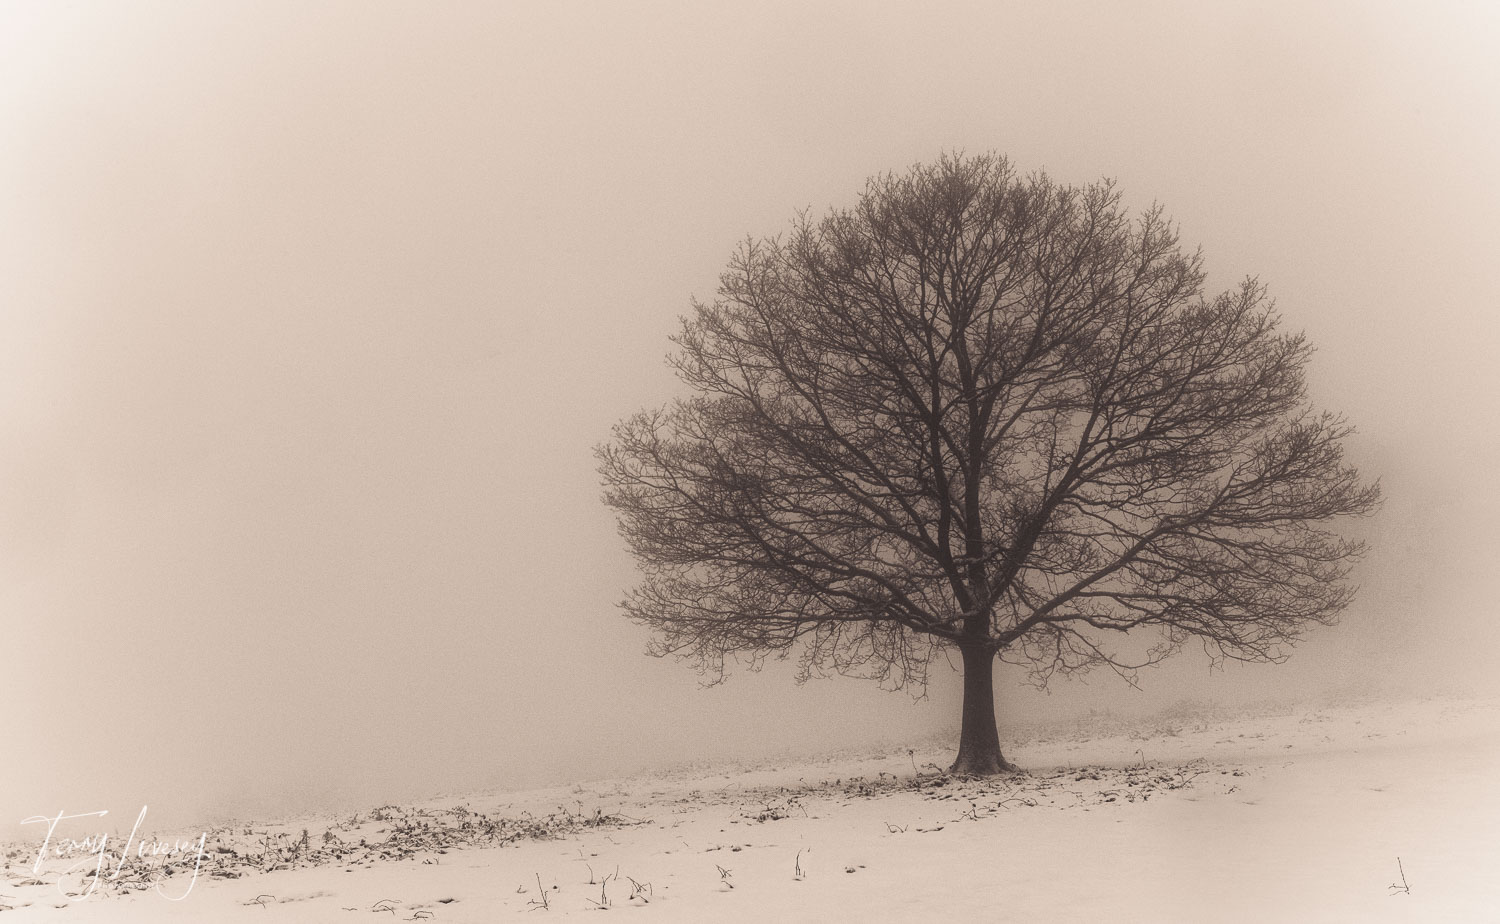 The dense snow and mist cover the landscape and reduce visability to a lone tree. There is something serenely peaceful in such isolated visibility.